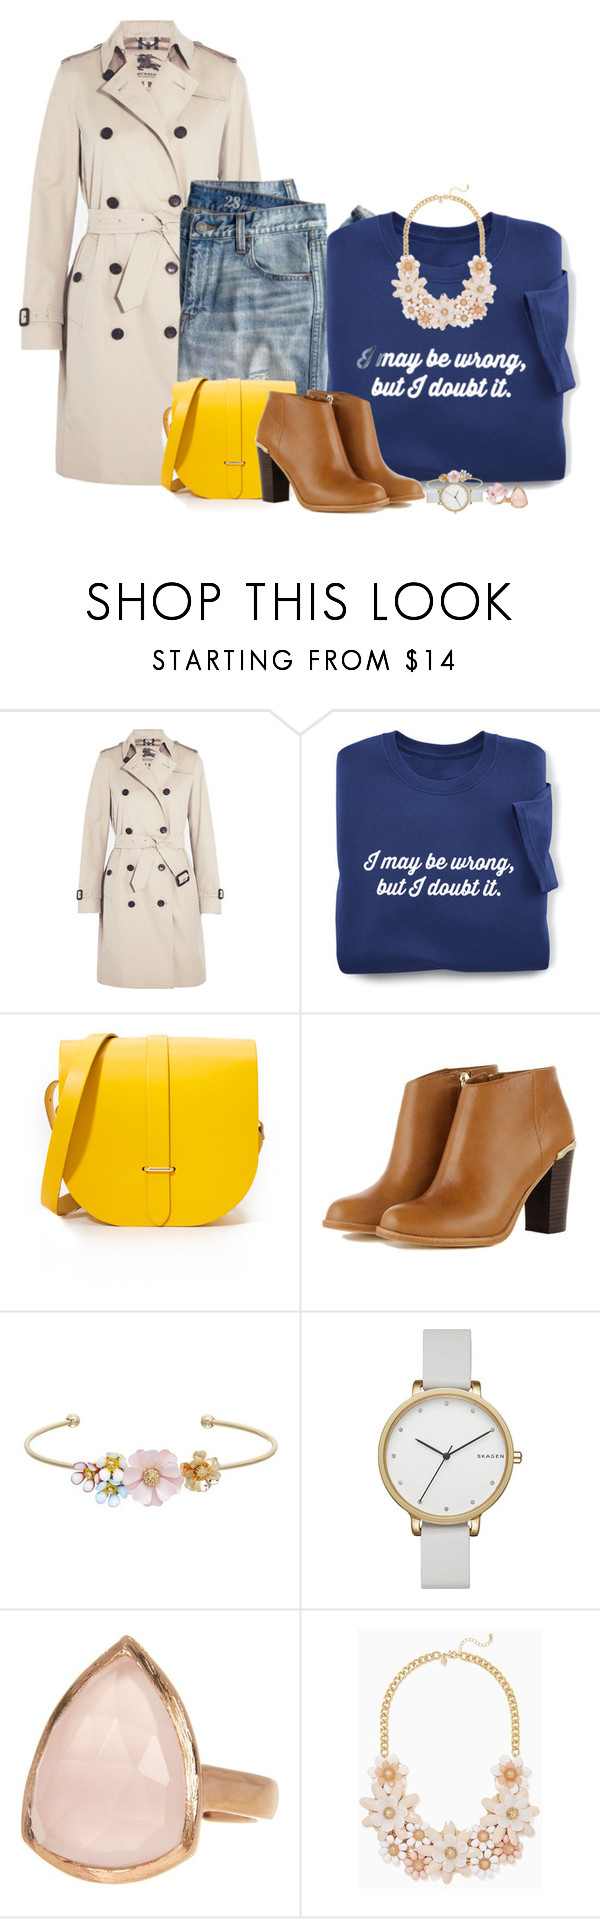 """saddle up for something warm"" by fantasia-fashion ❤ liked on Polyvore featuring Burberry, J.Crew, The Cambridge Satchel Company, LC Lauren Conrad, Skagen, de Grisogono, SonyaRenée, contest and saddlebag"